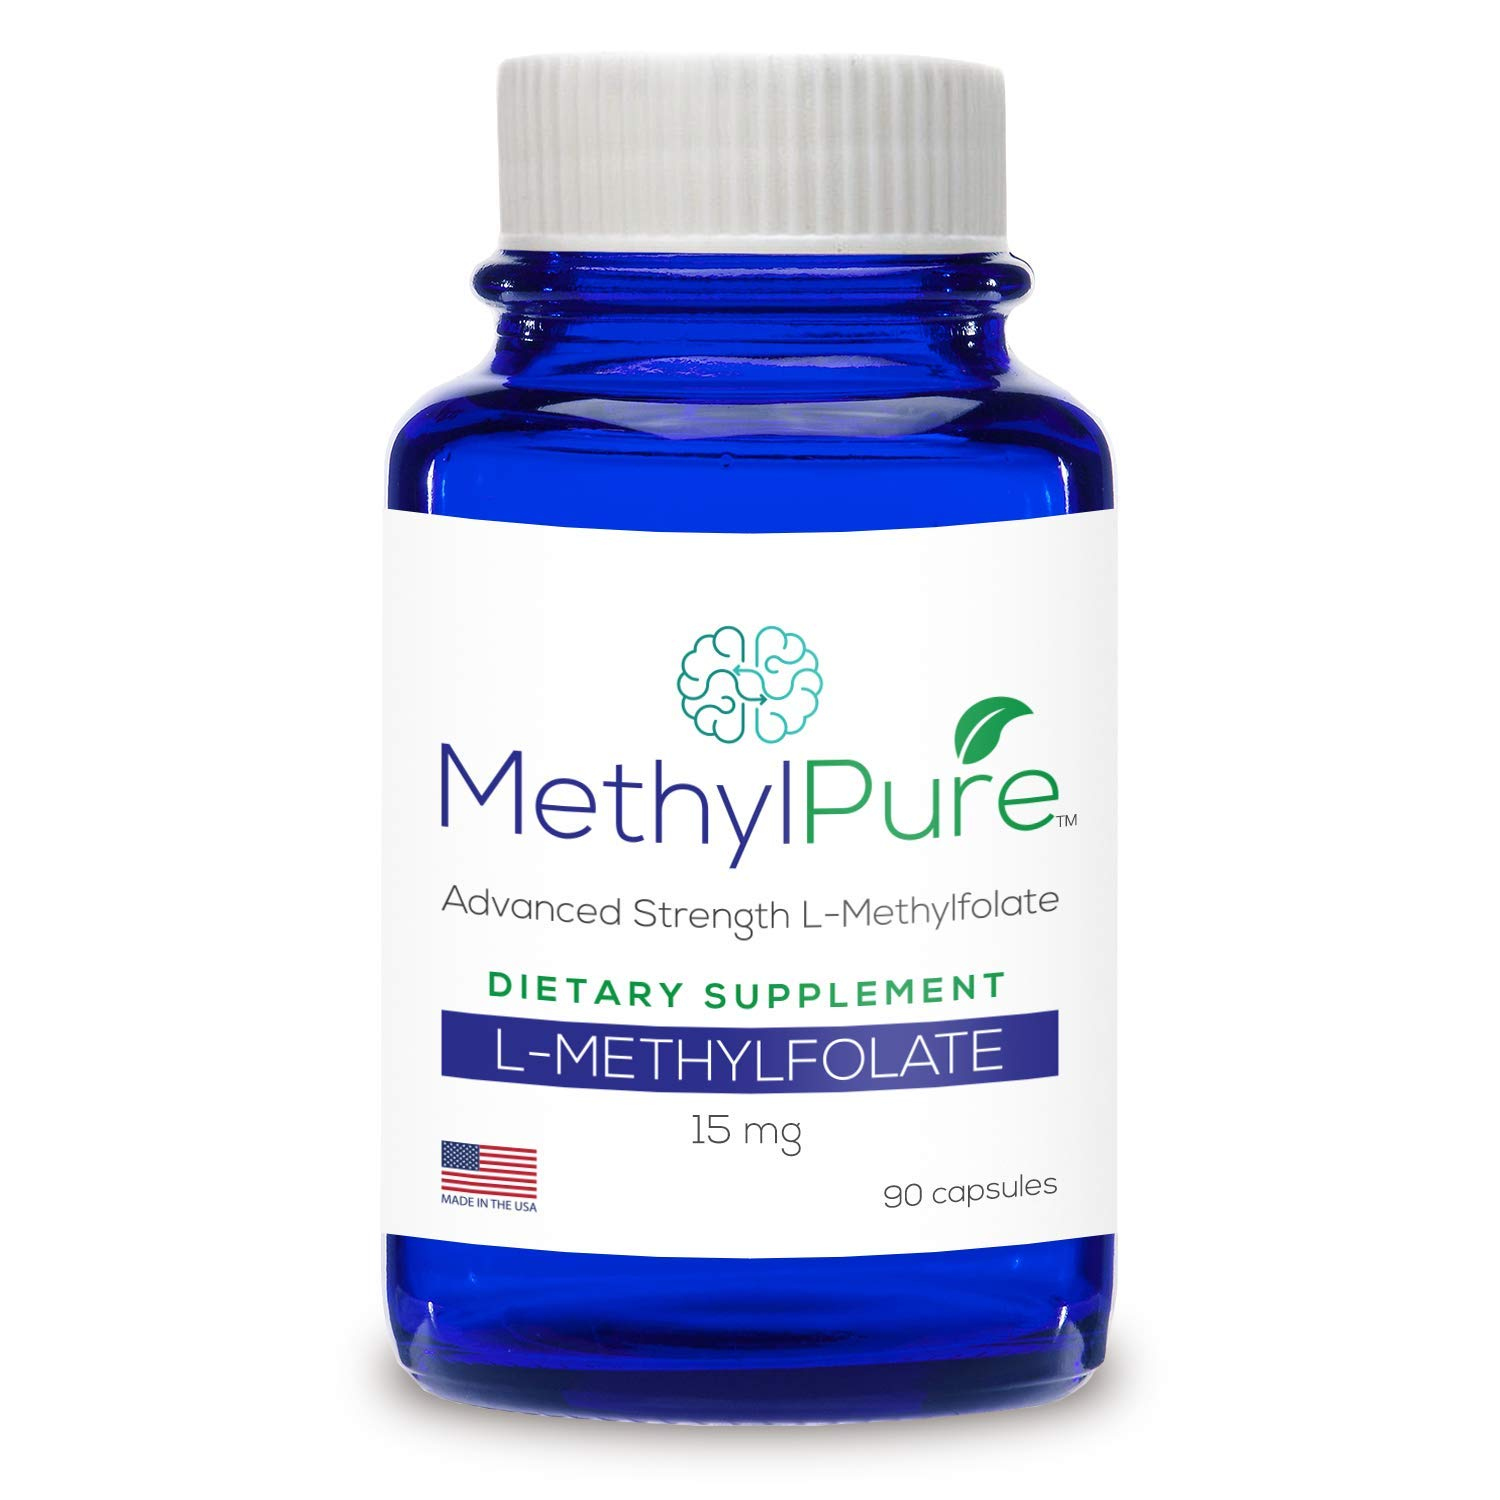 Methylpure L-Methylfolate 15mg - 90 Capsules Maximum Strength - Activated B9 Methyl Folate Supplement